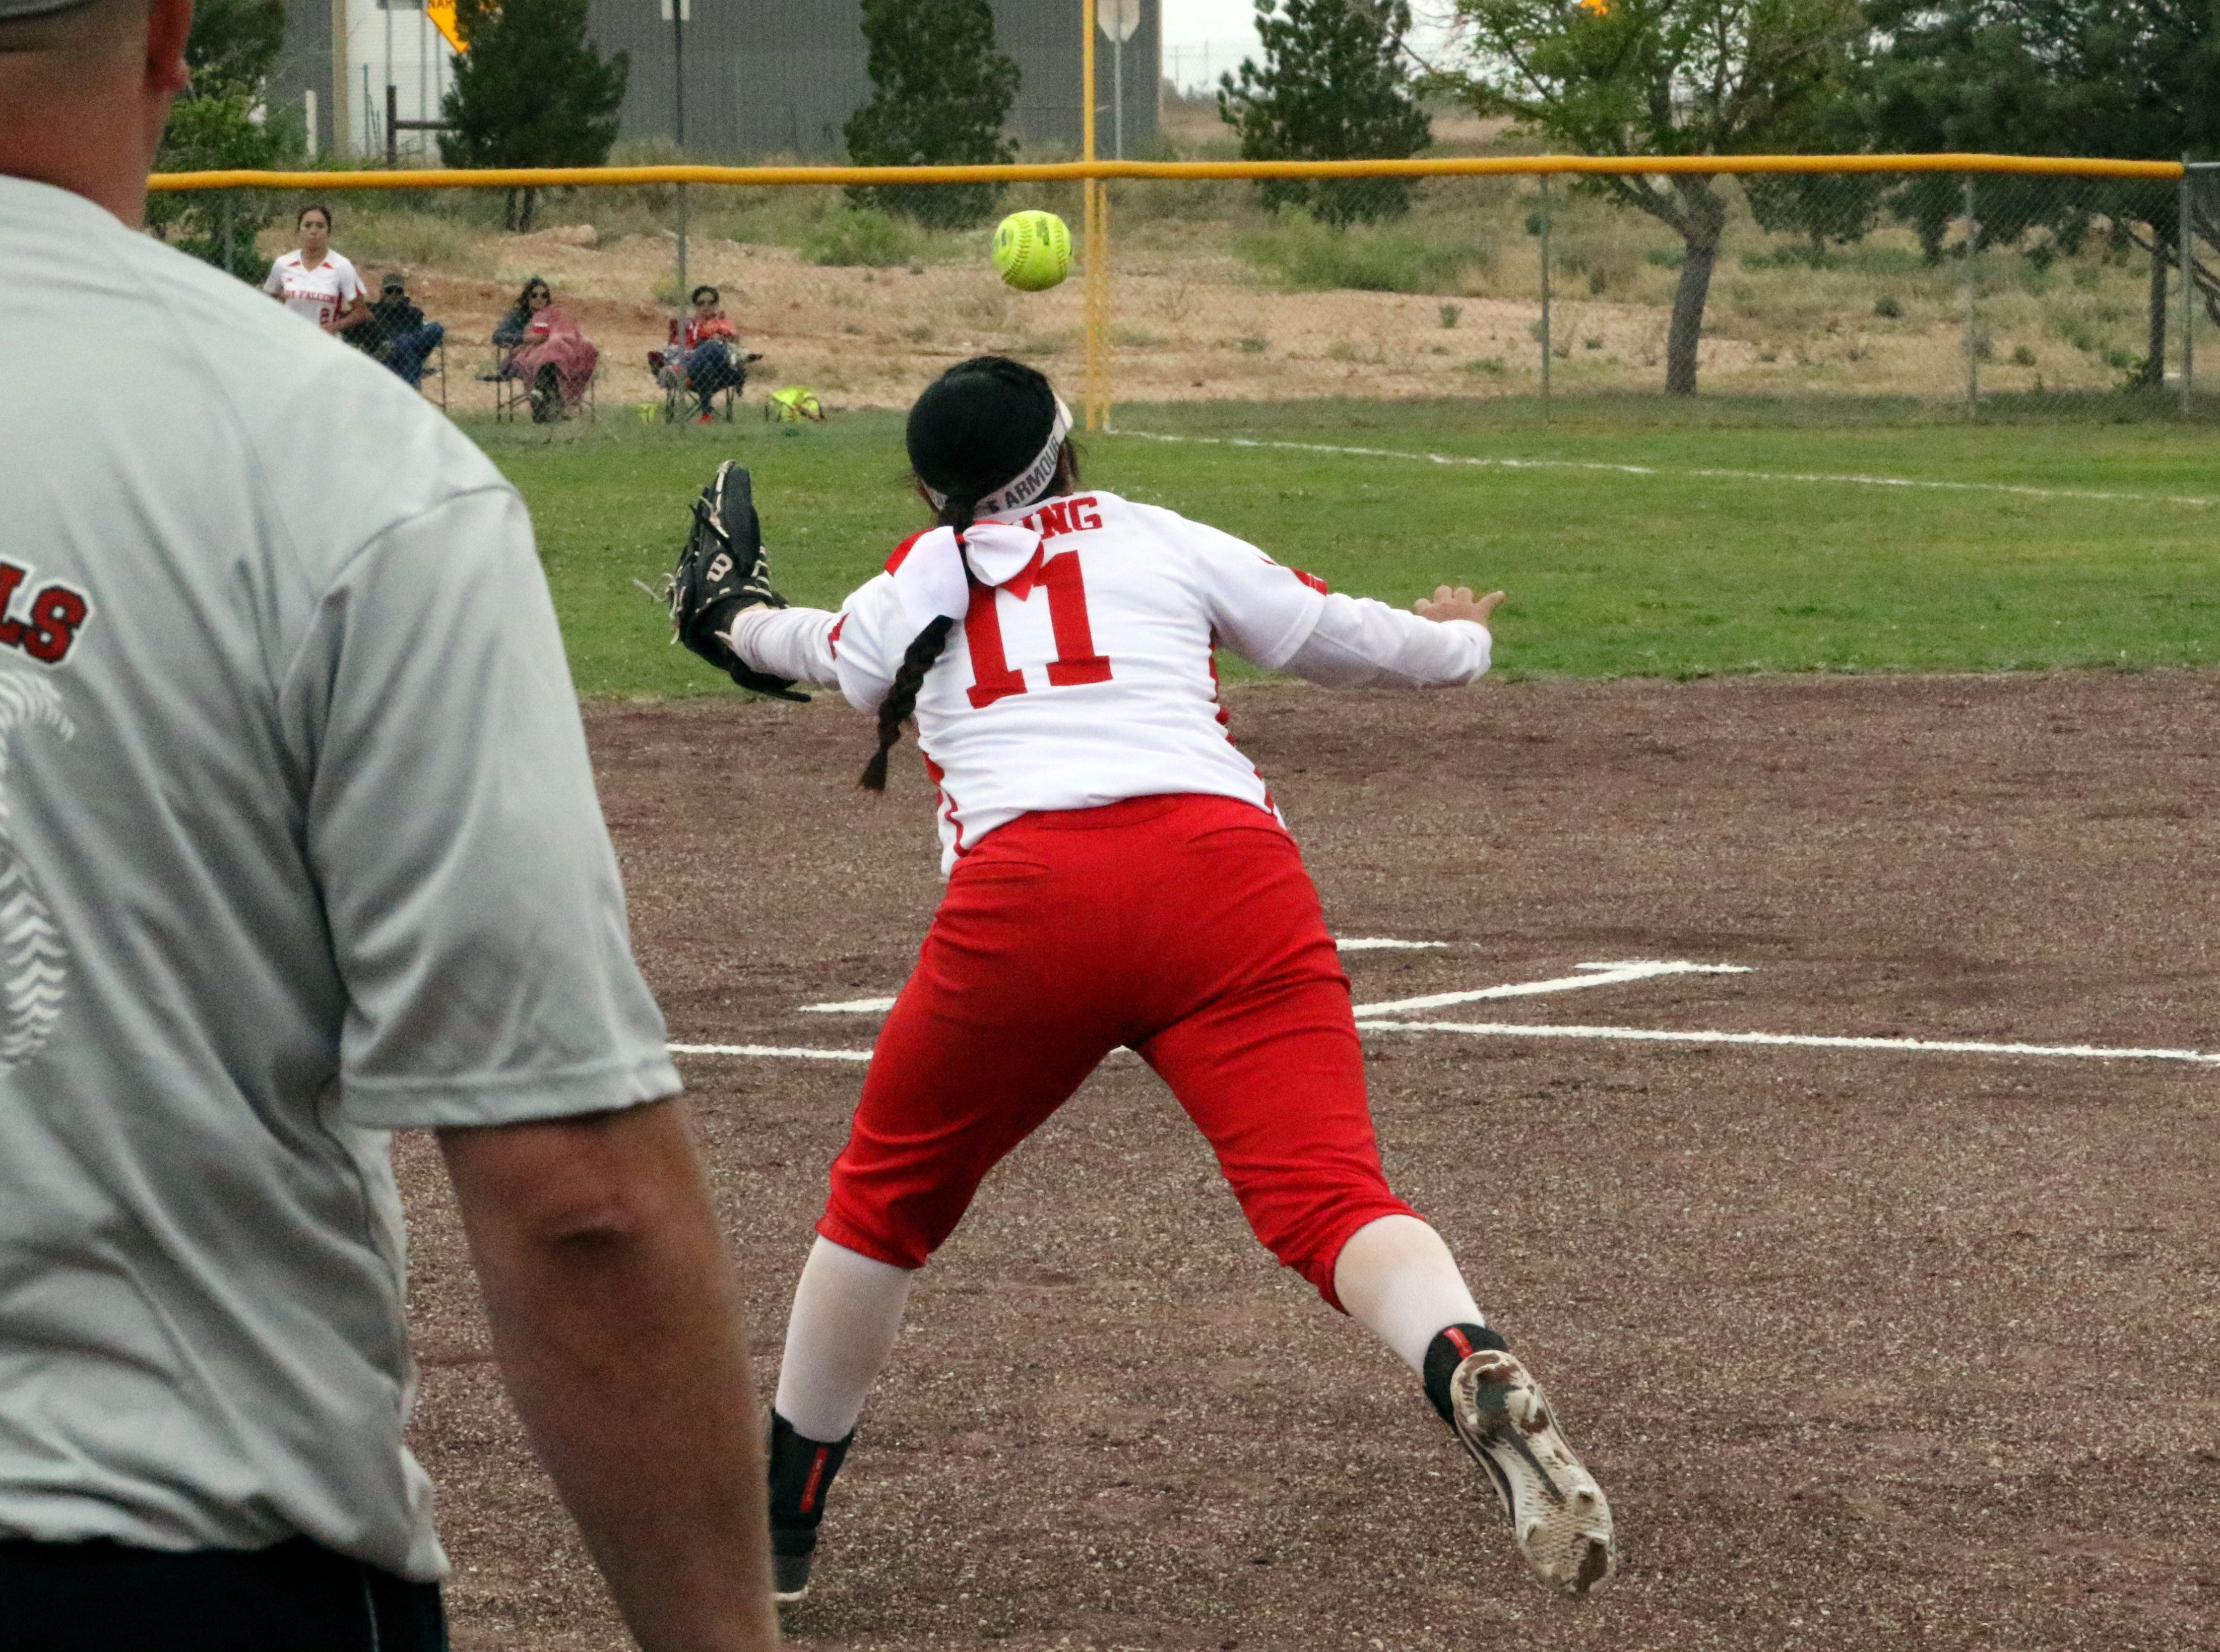 Loving's Angelica Villegas dives for a line drive during Game 1 of Saturday's doubleheader against Eunice.